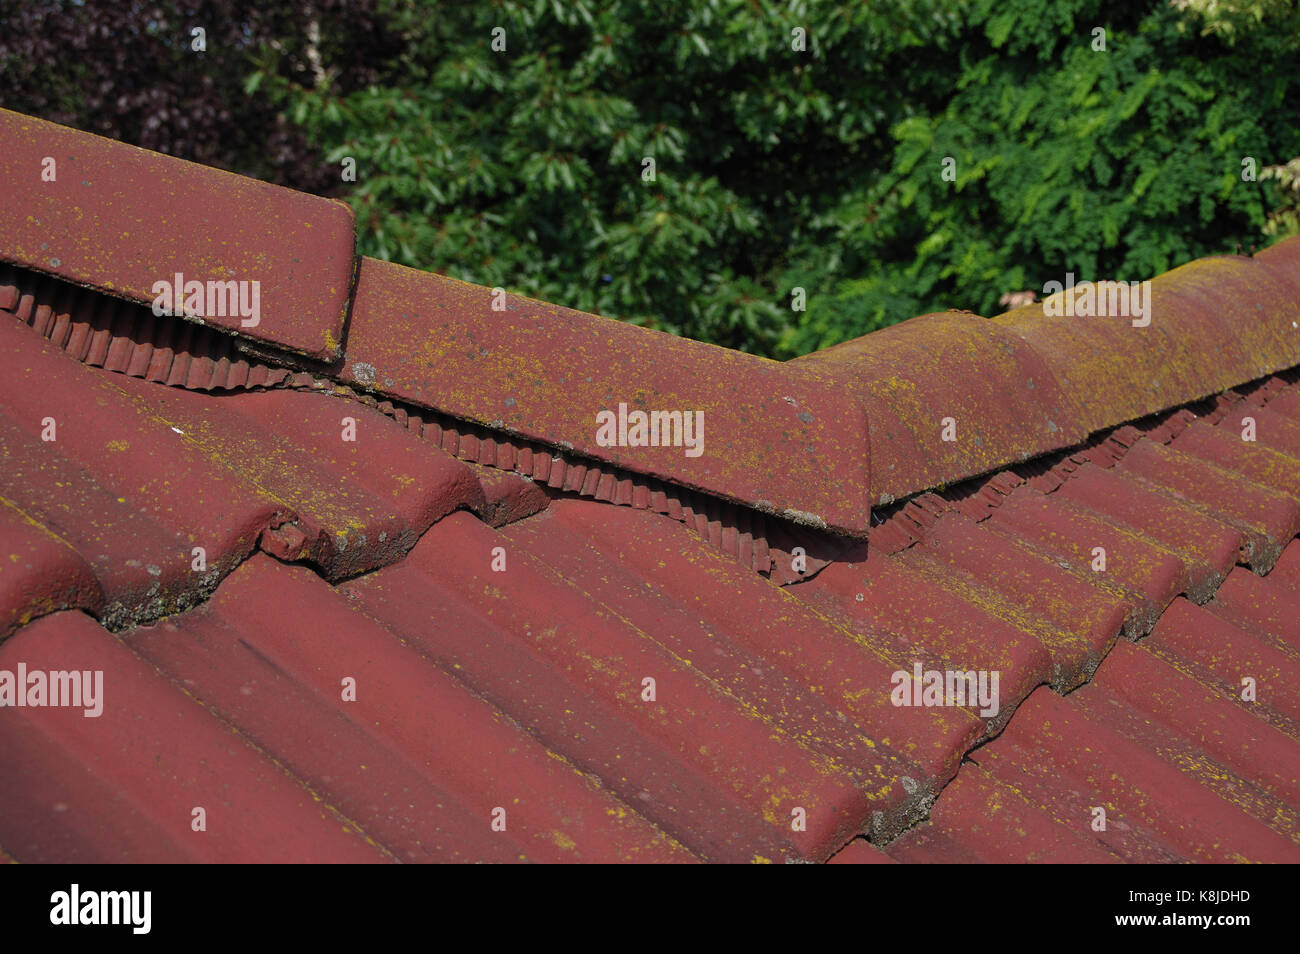 Lichen Roof Tiles Stock Photos Amp Lichen Roof Tiles Stock